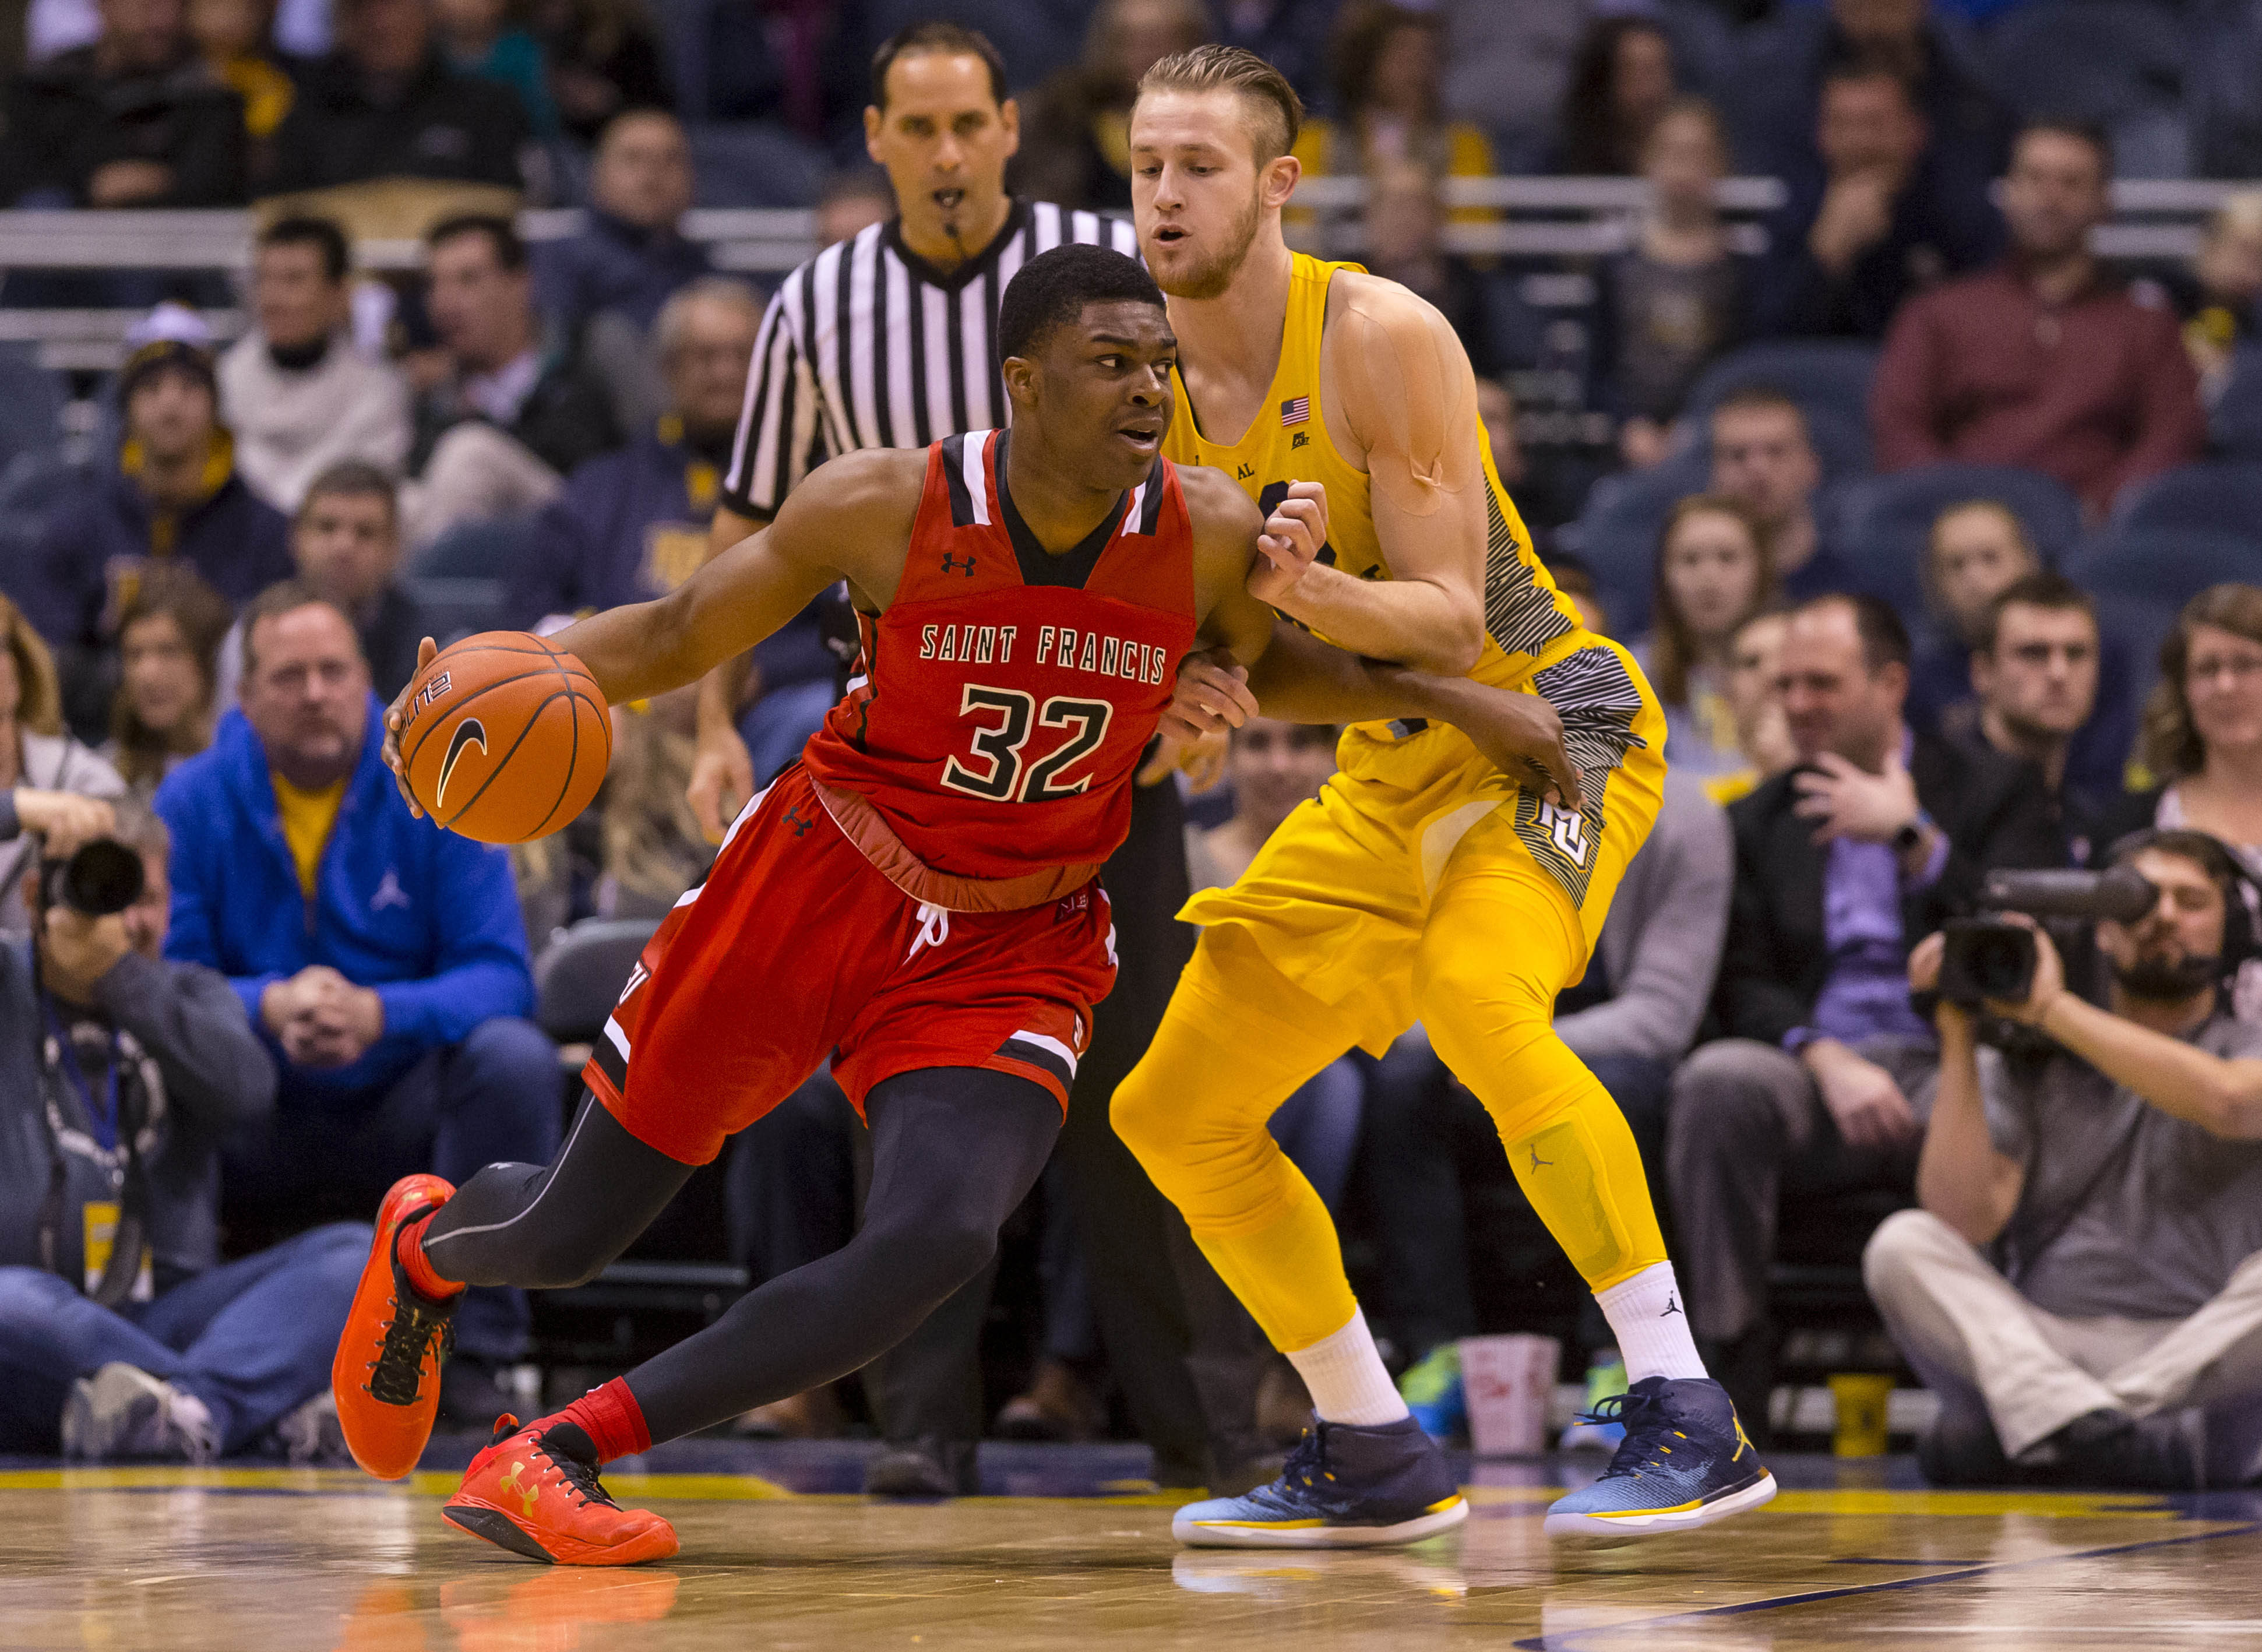 NCAA Basketball: St. Francis (PA) at Marquette